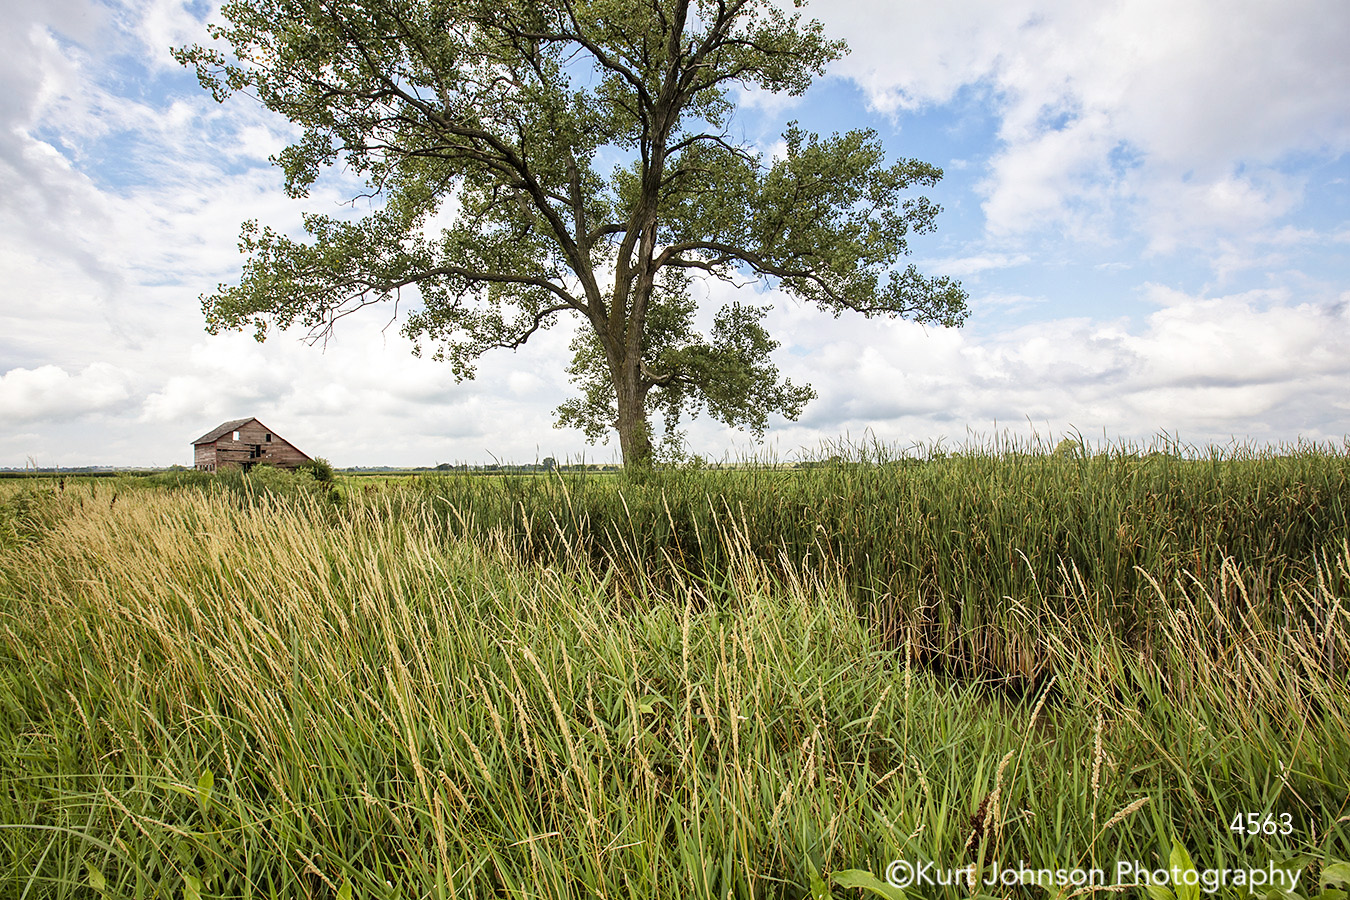 landscape grasses green tree clouds barn rural midwest